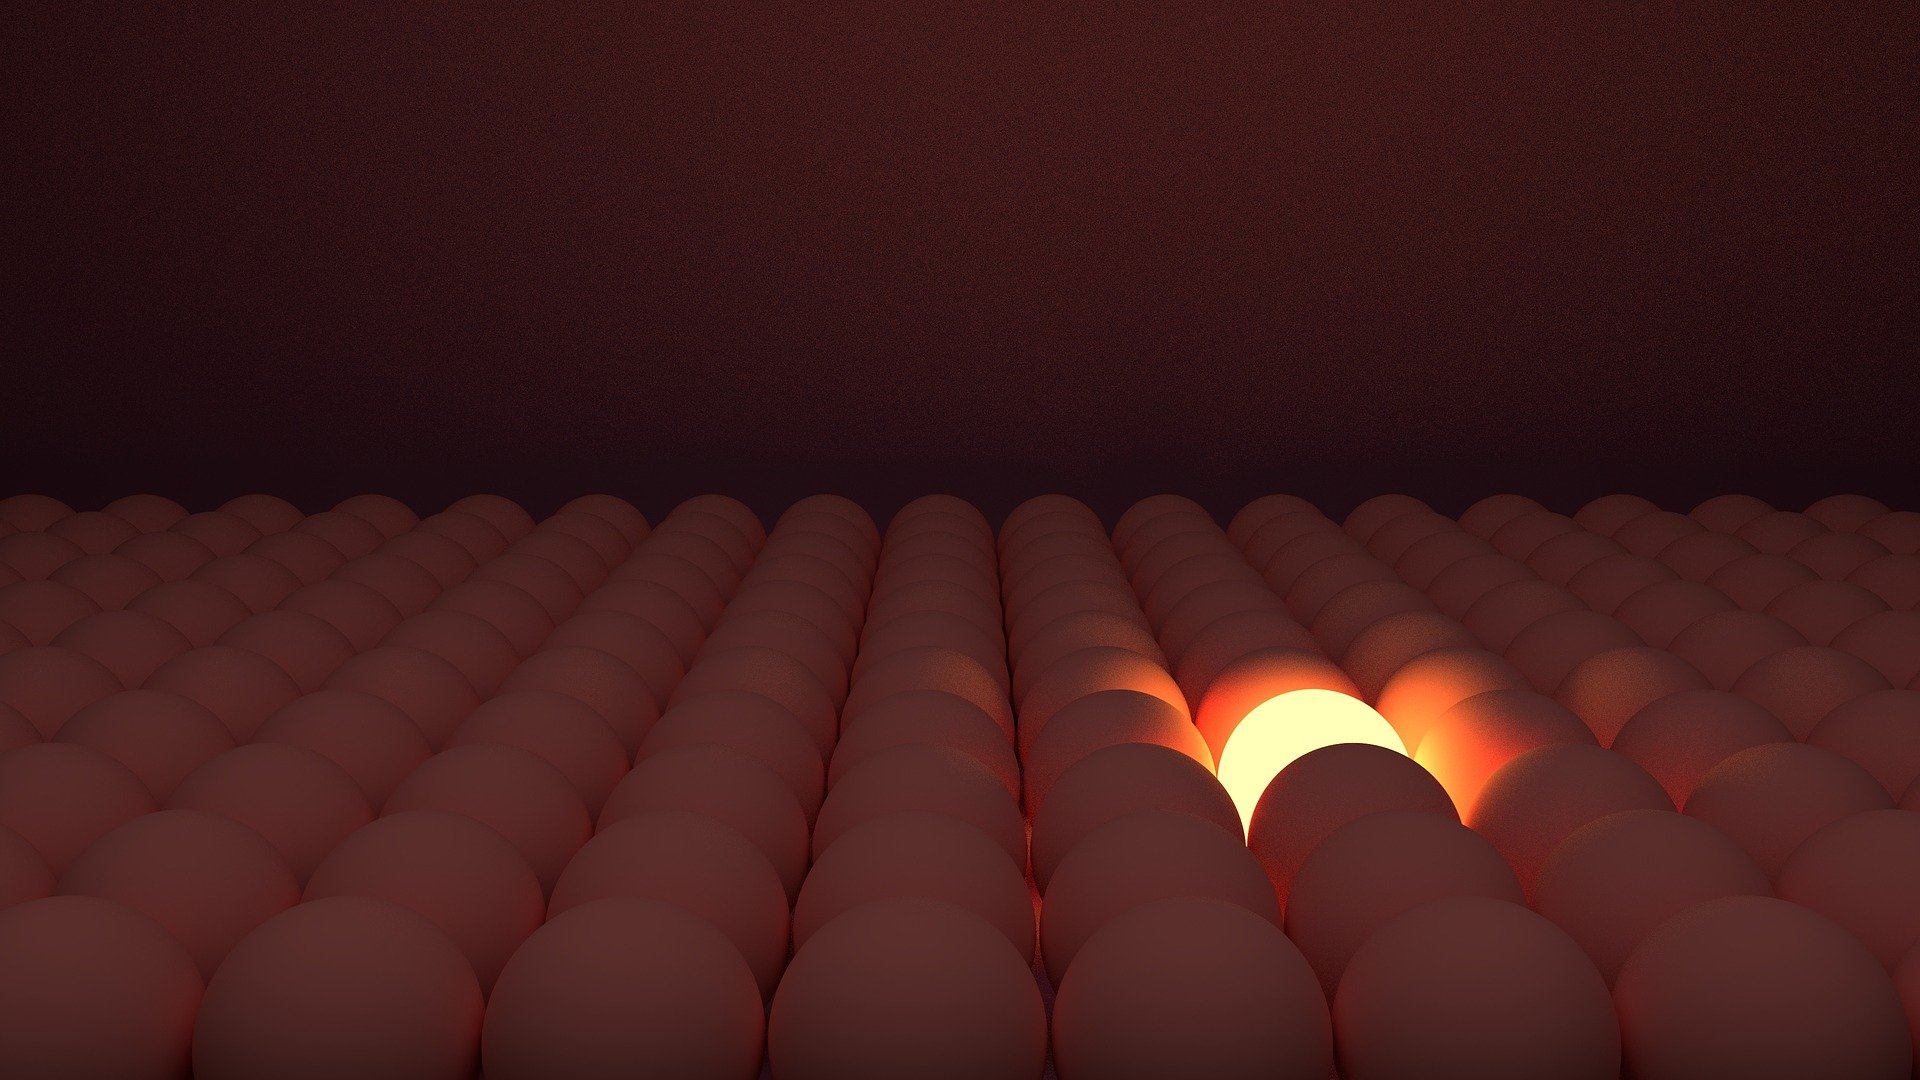 one lighted egg in a crowd of eggs